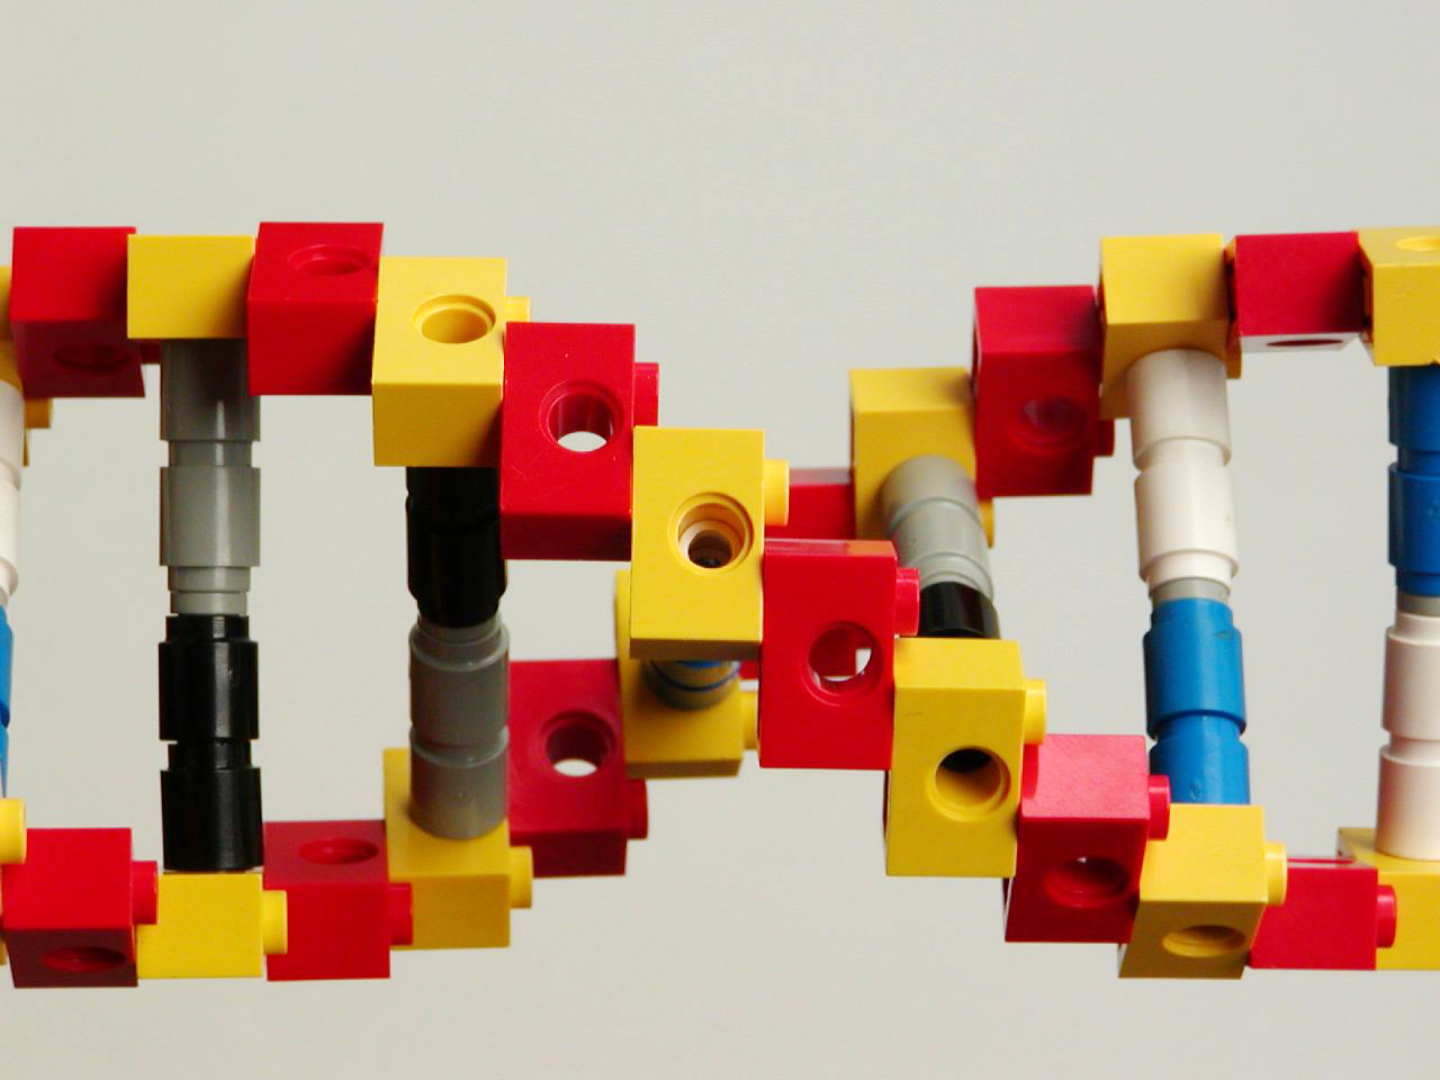 Is There Going to Be a Big Hole in History Where the 21st Century Was? Lego_DNA